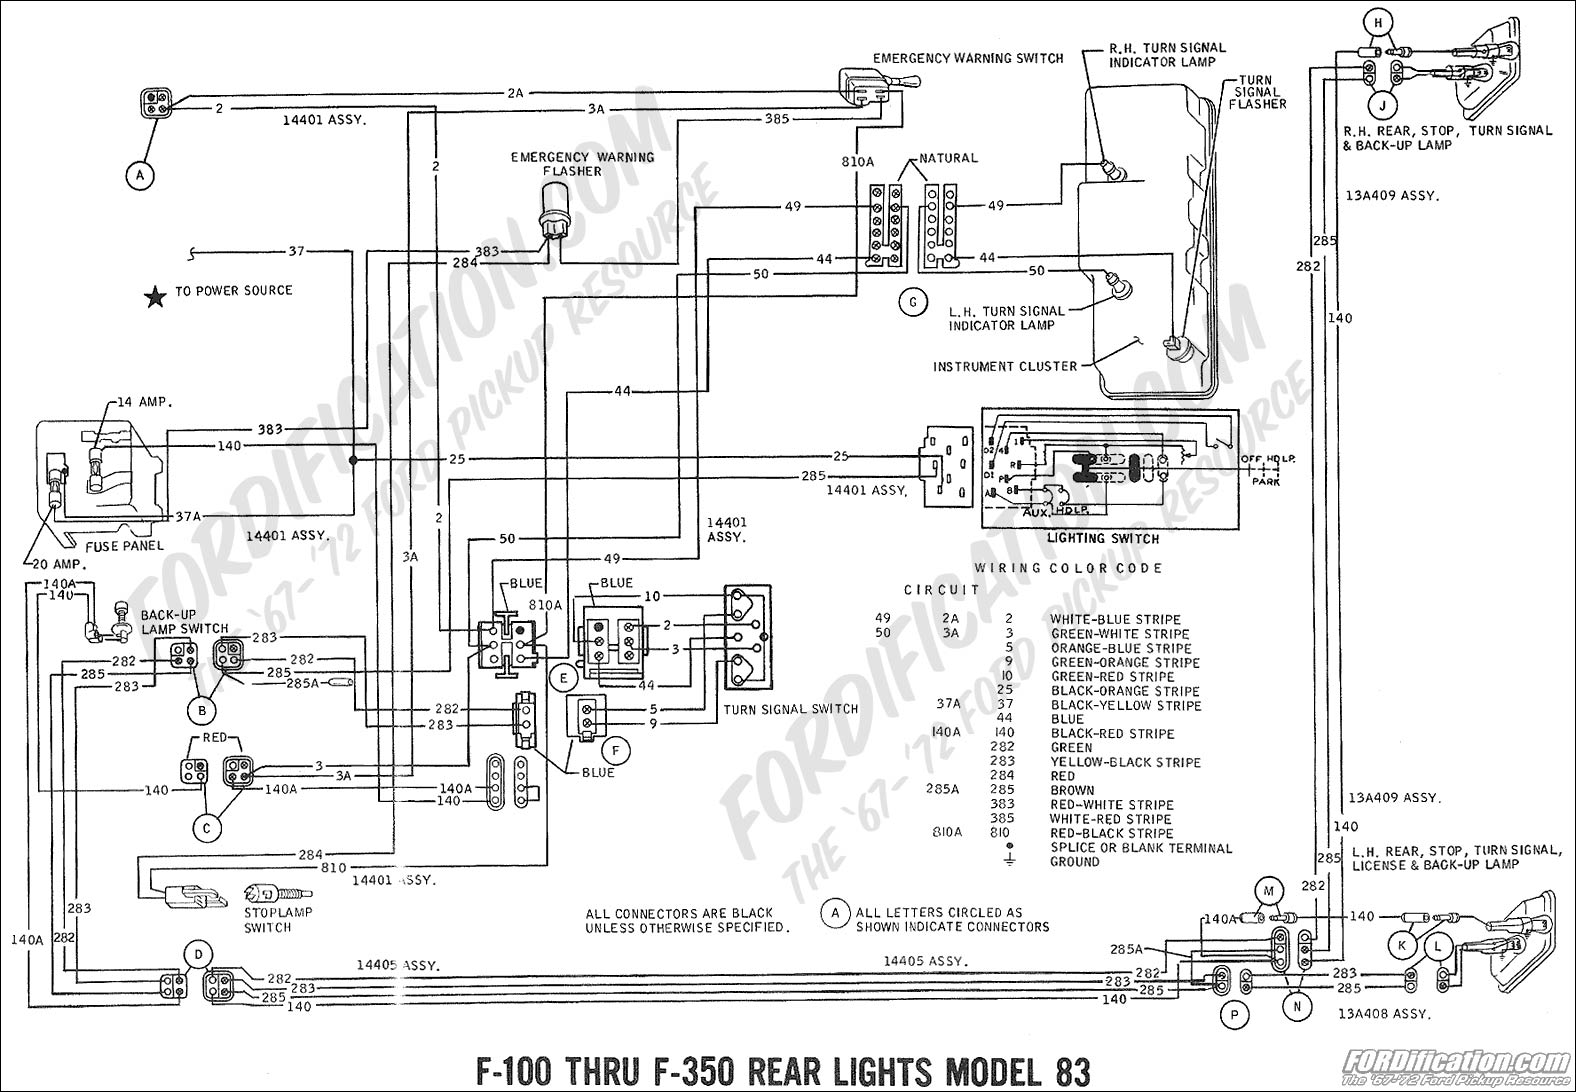 71 Ford F100 Wiring Diagram Data 1970 Gmc Pickup Diagrams 1971 1959 Schematics Light Switch